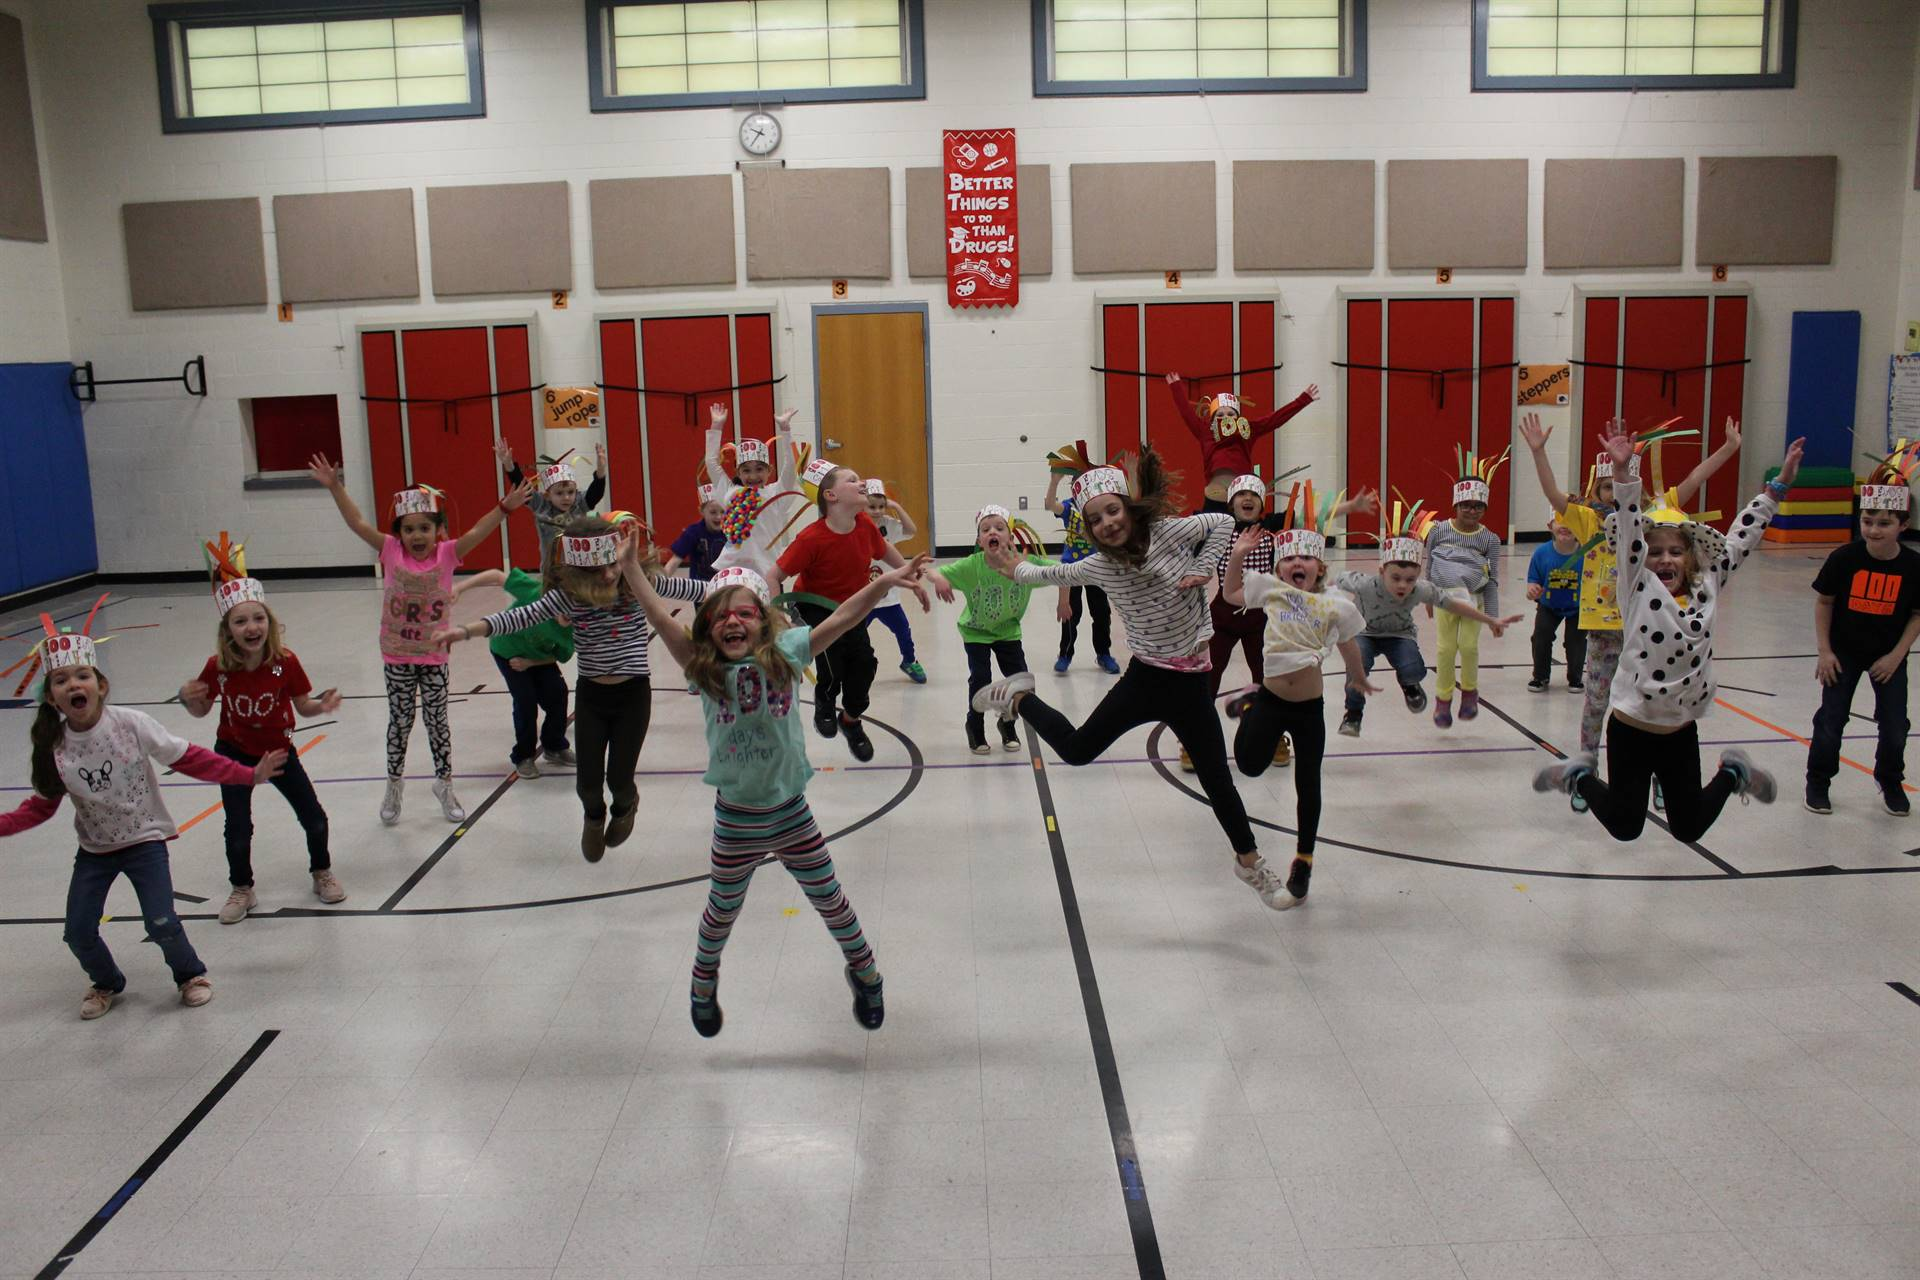 Students jumping in the air to celebrate the 100th day of school